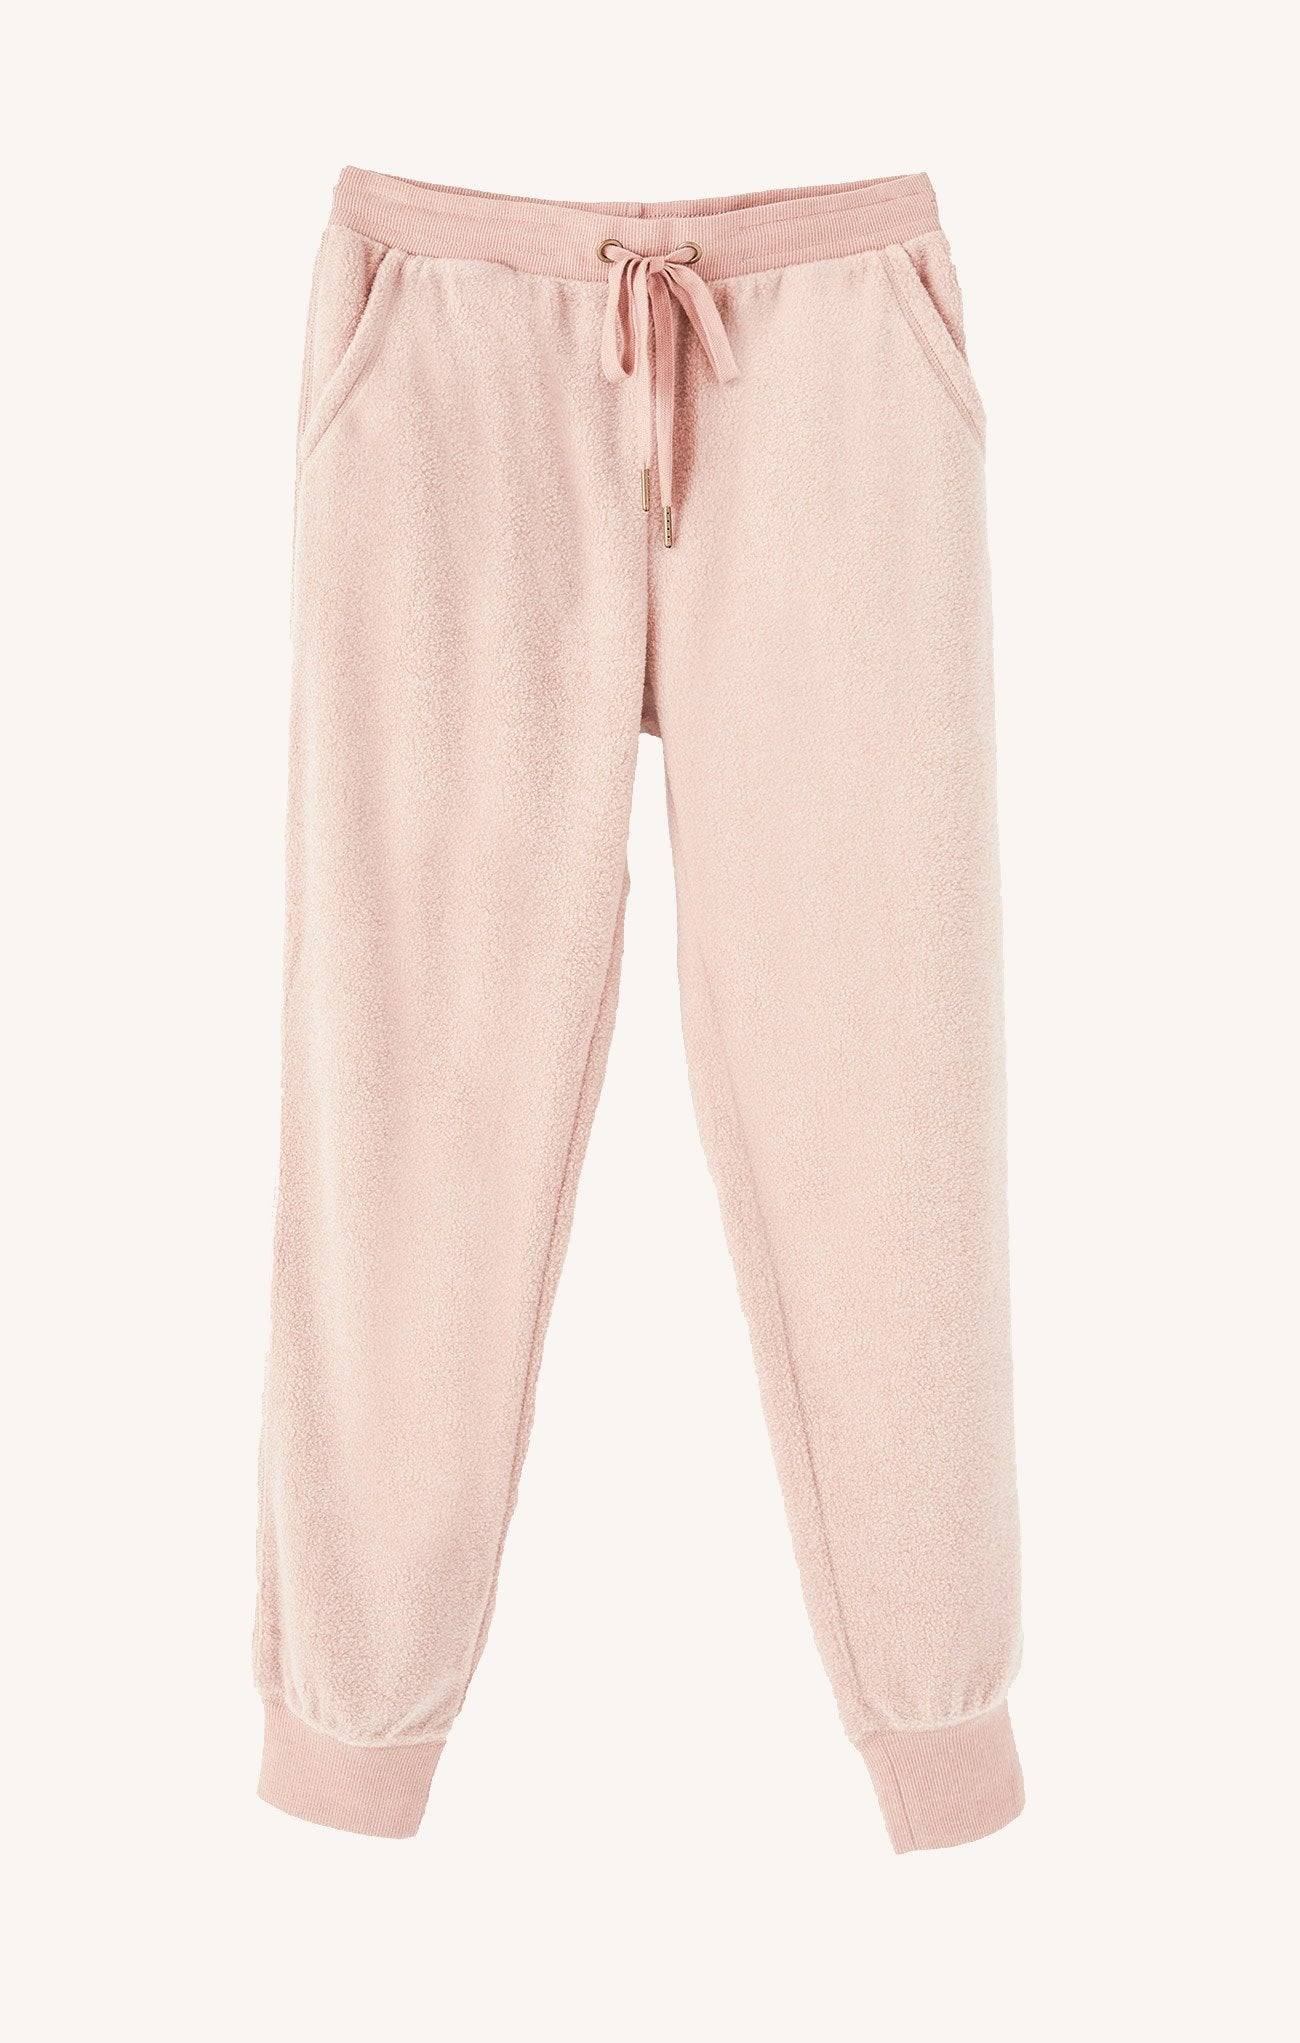 Lazy Days Fleece Jogger - Wild Flower